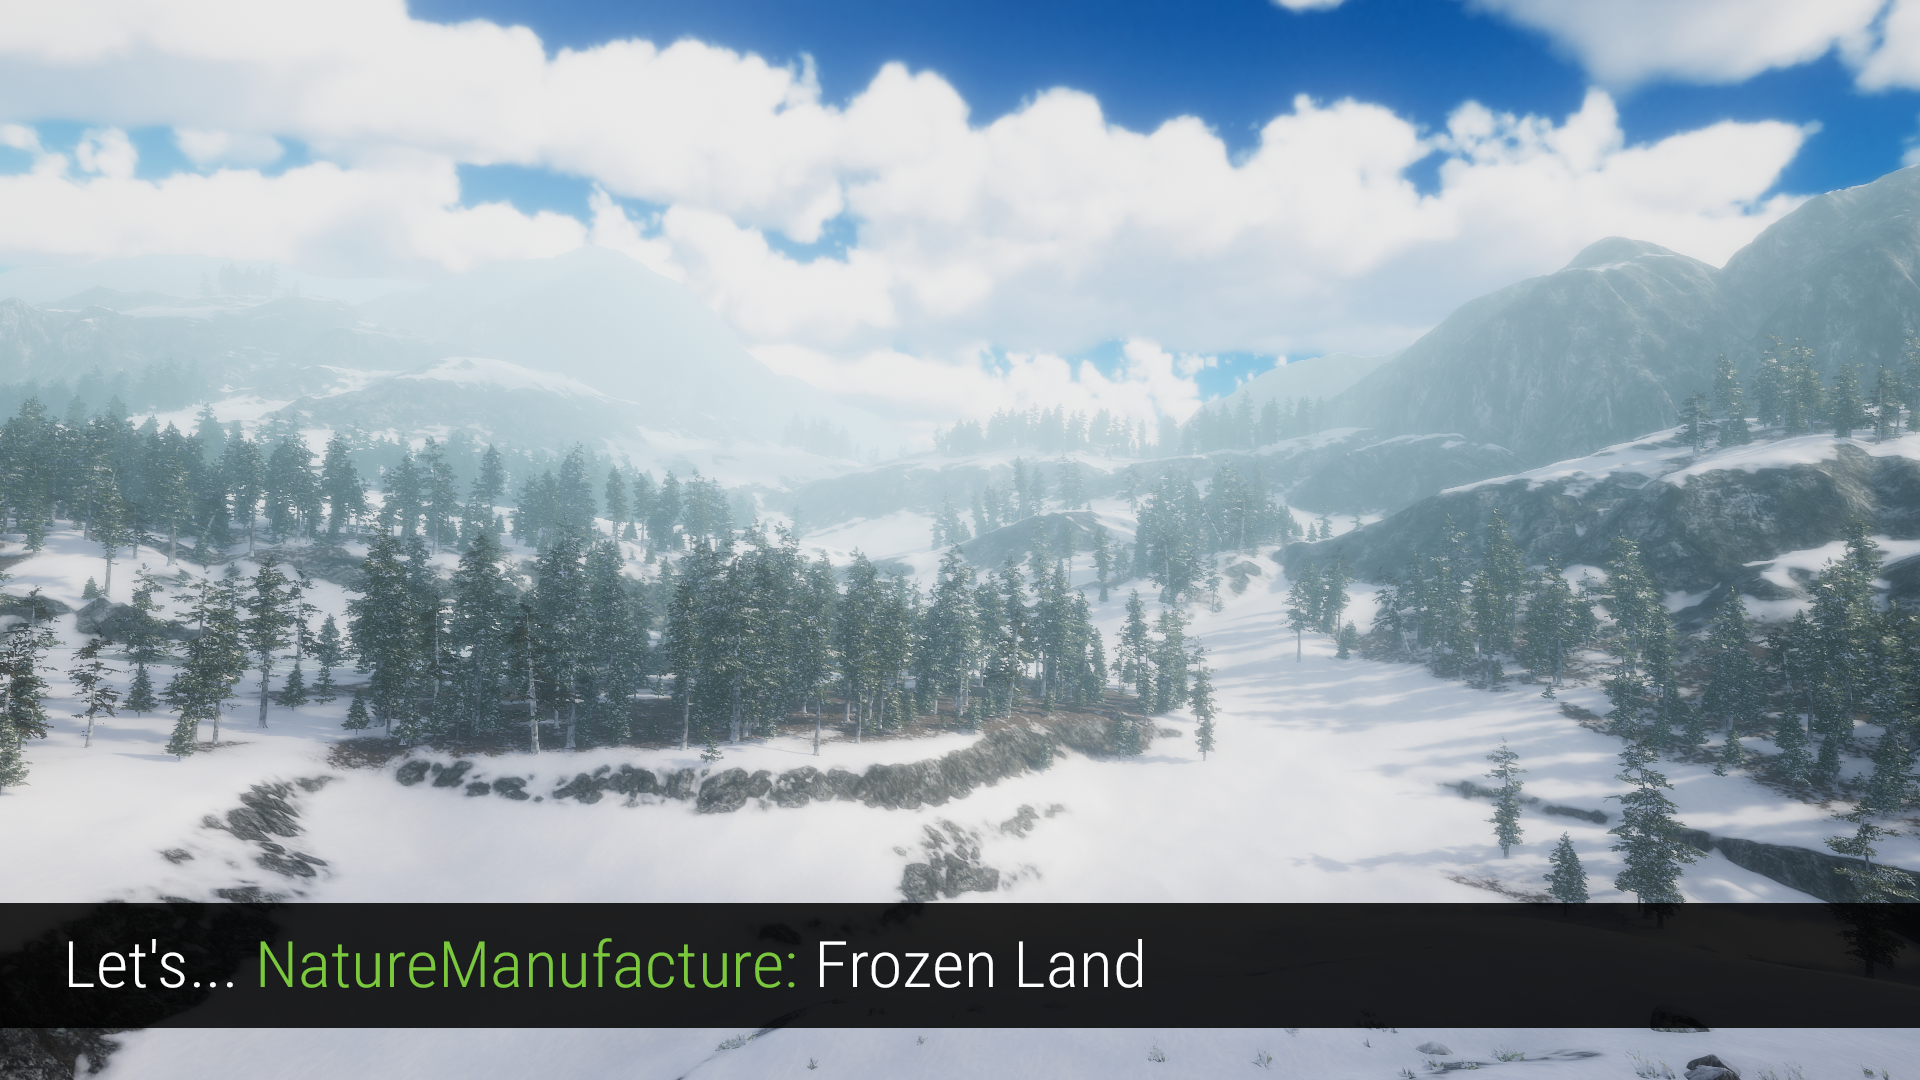 Let's... NatureManufacture - Frozen Land (Tutorial)